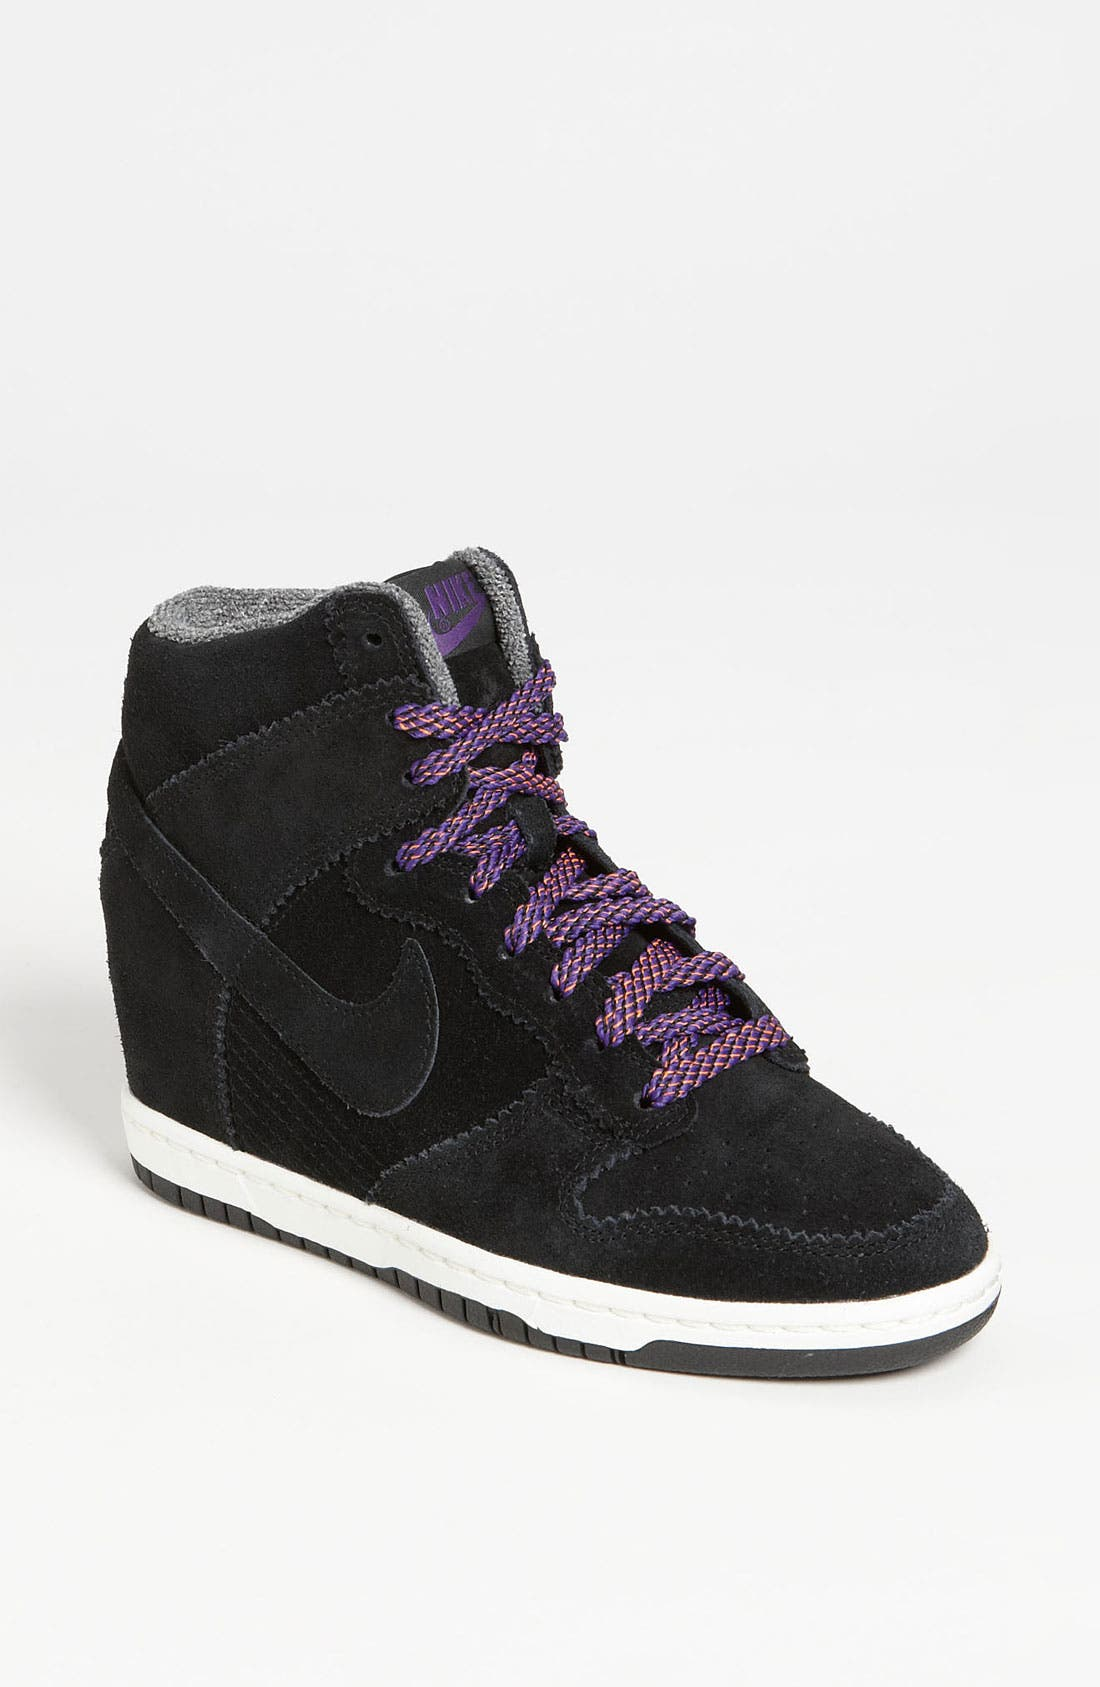 Main Image - Nike 'Dunk Sky Hi' Wedge Sneaker (Women)